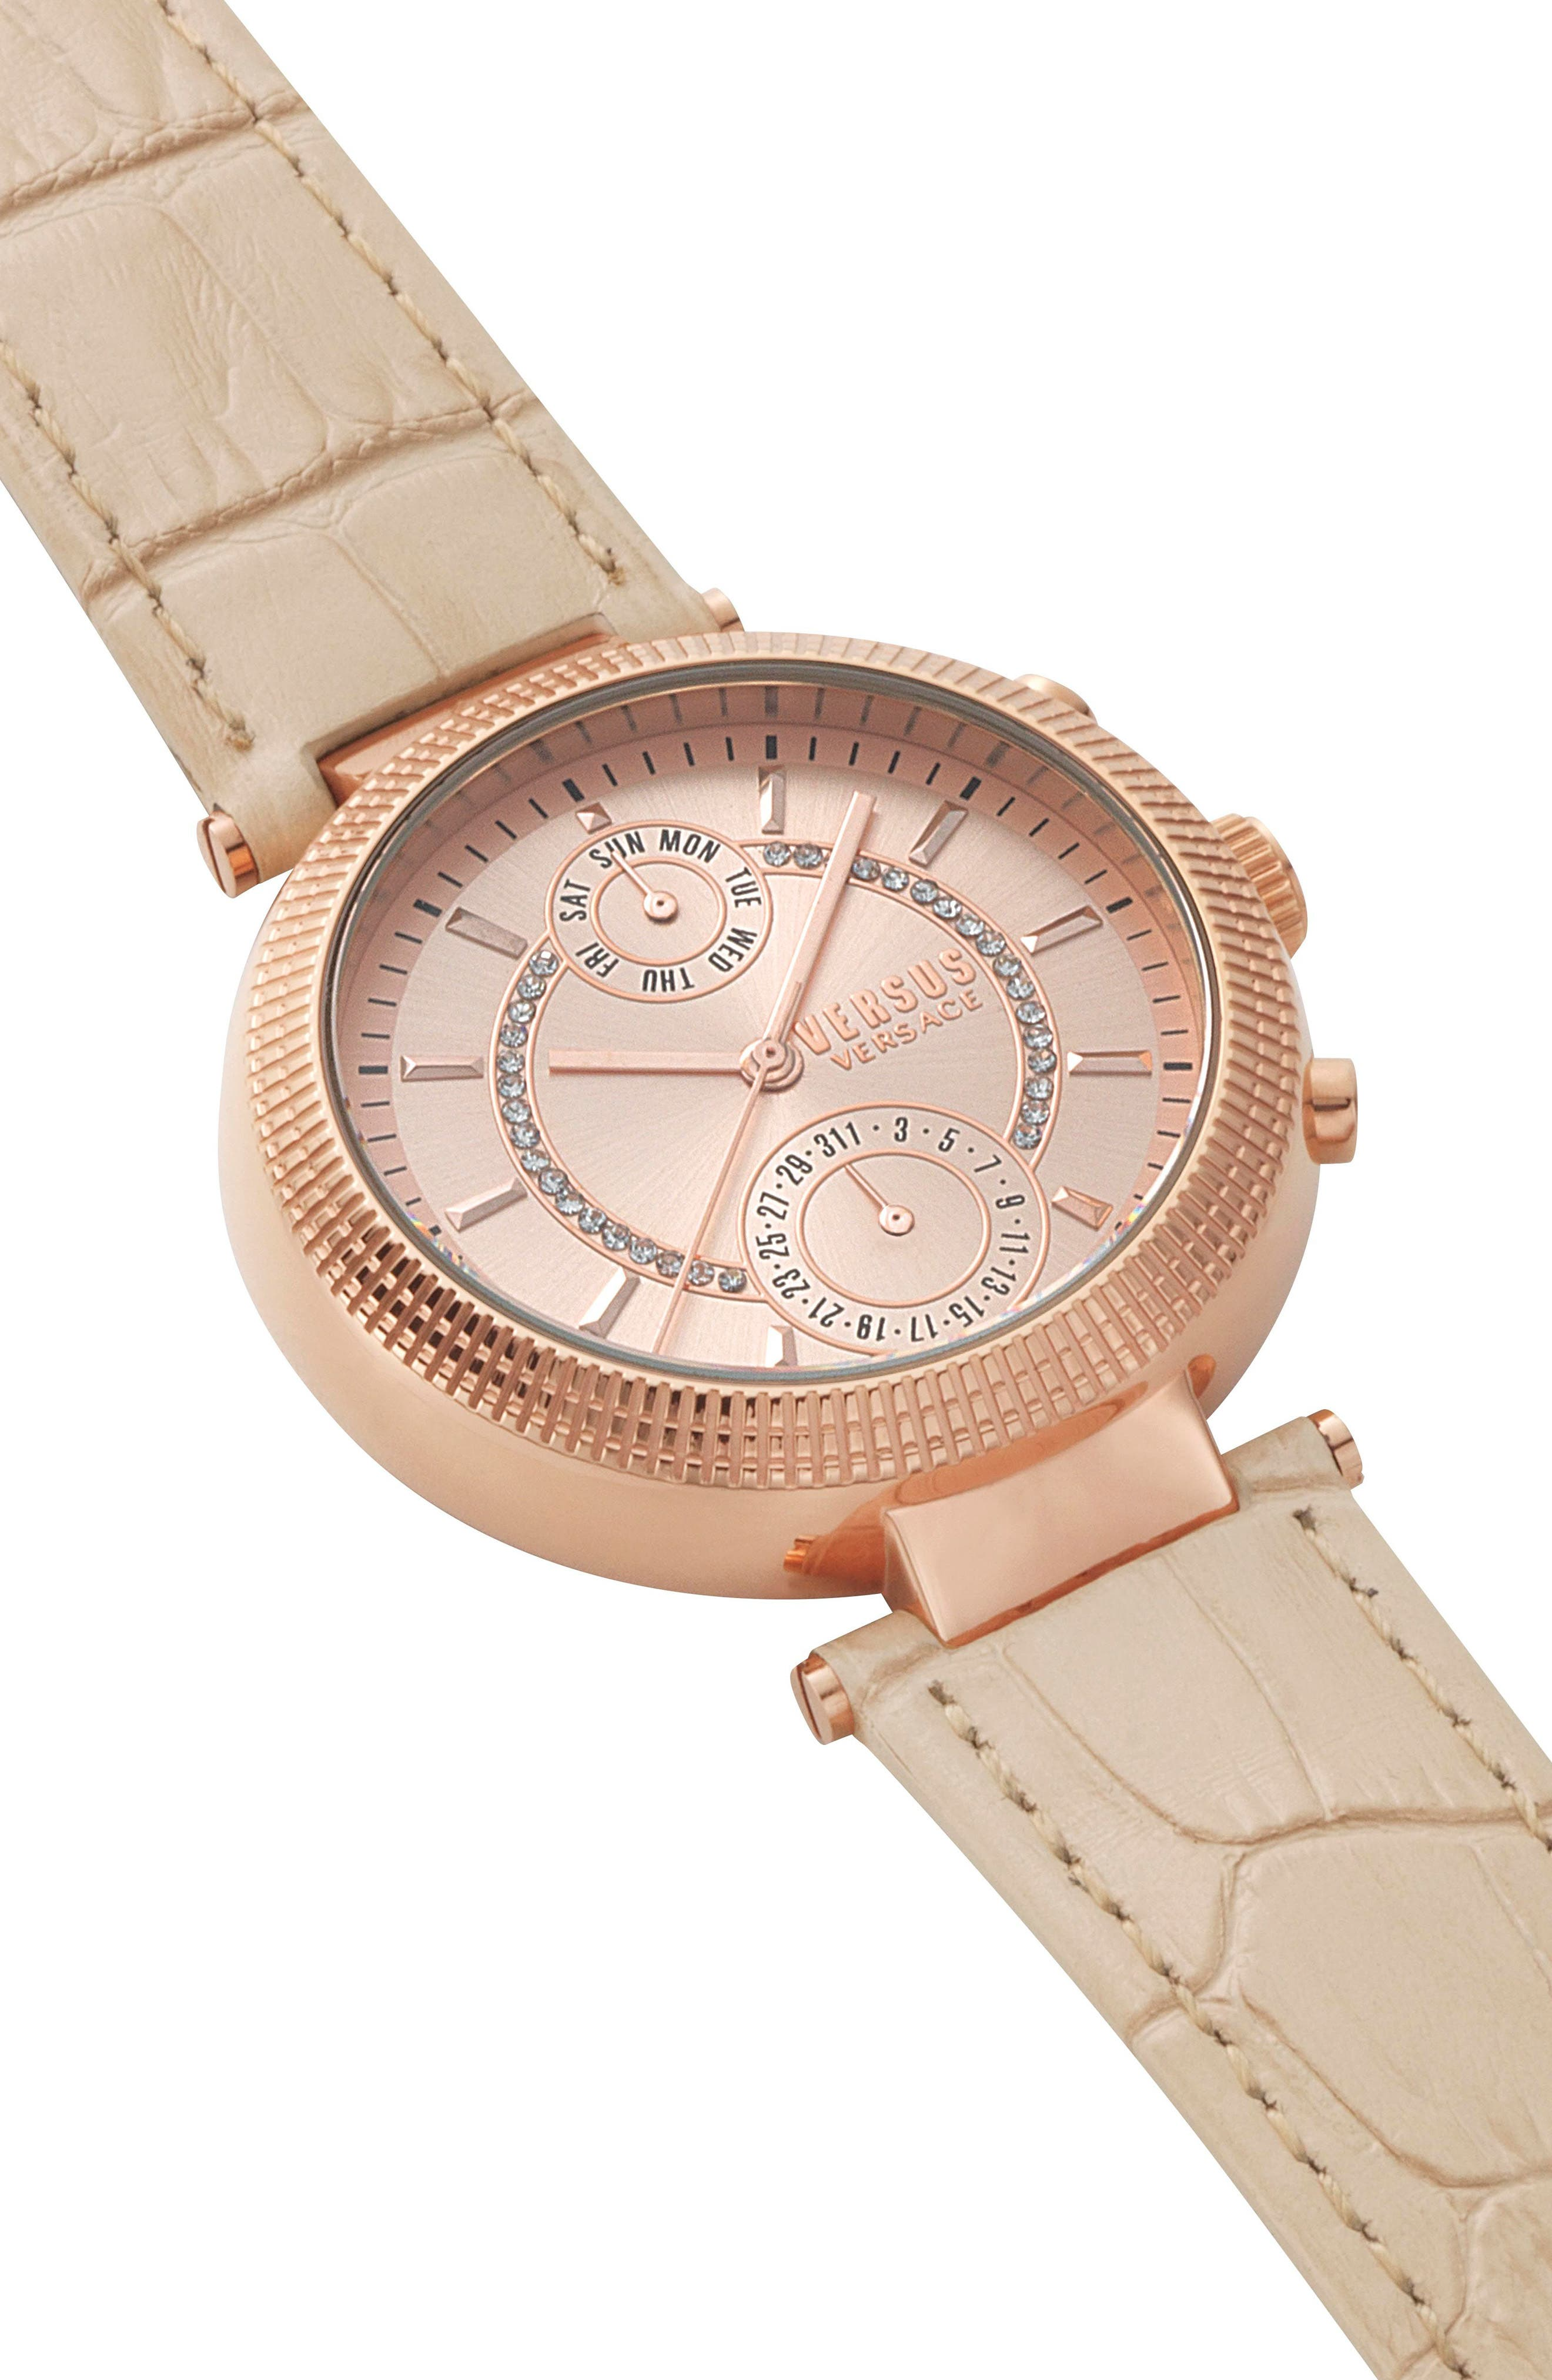 Versus by Versace Star Ferry Chronograph Bracelet Watch, 38mm,                             Alternate thumbnail 3, color,                             Beige/ Rose Gold